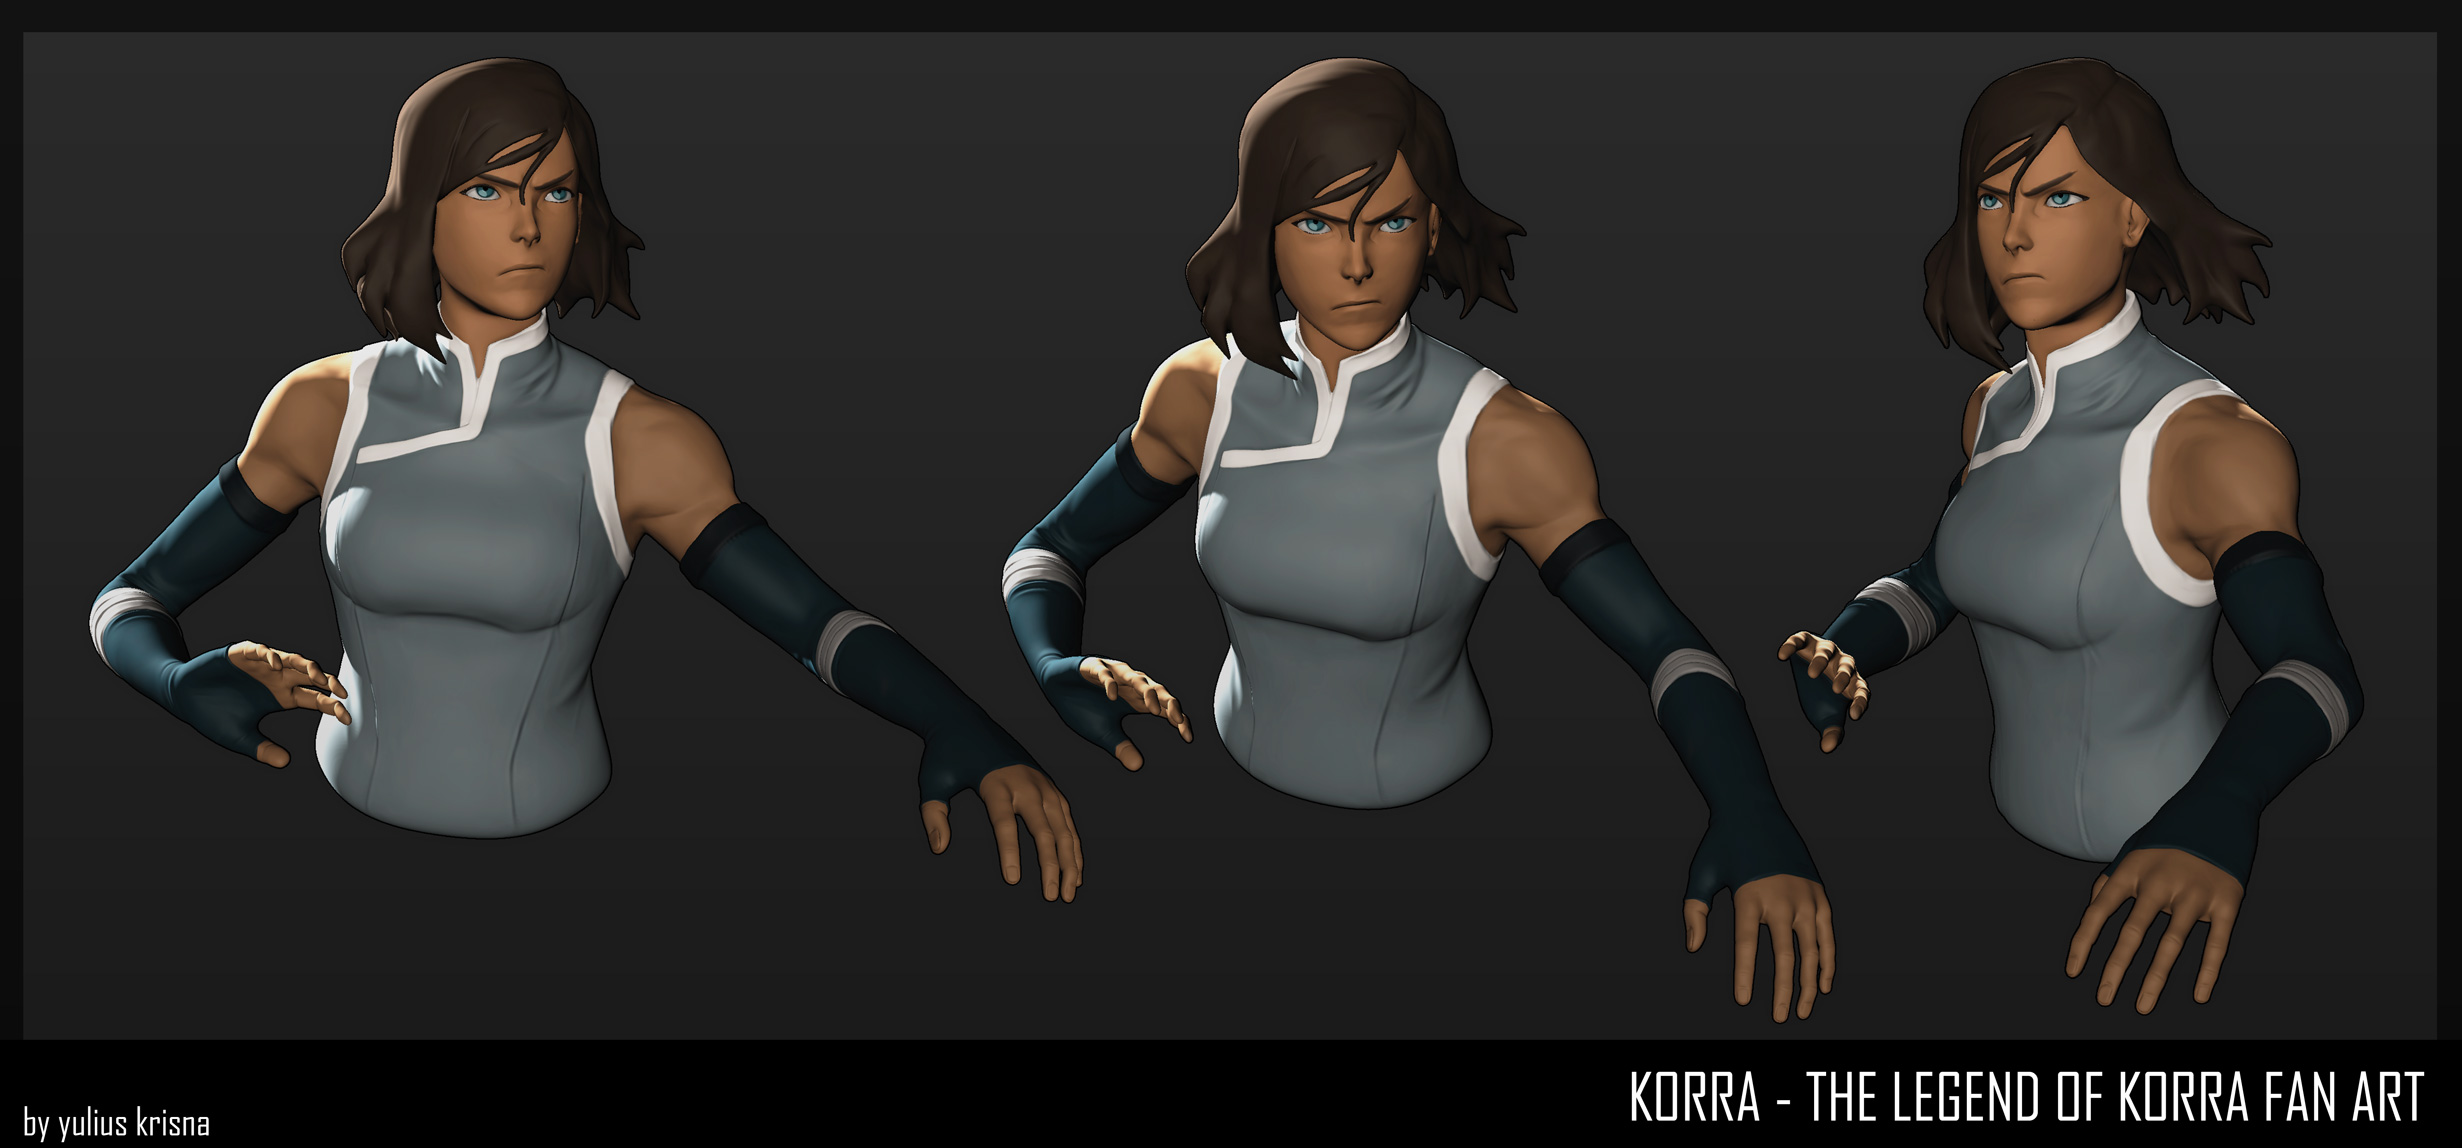 _final__korra___the_legend_of_korra_by_yuliuskrisna-d8dbu3f.jpg